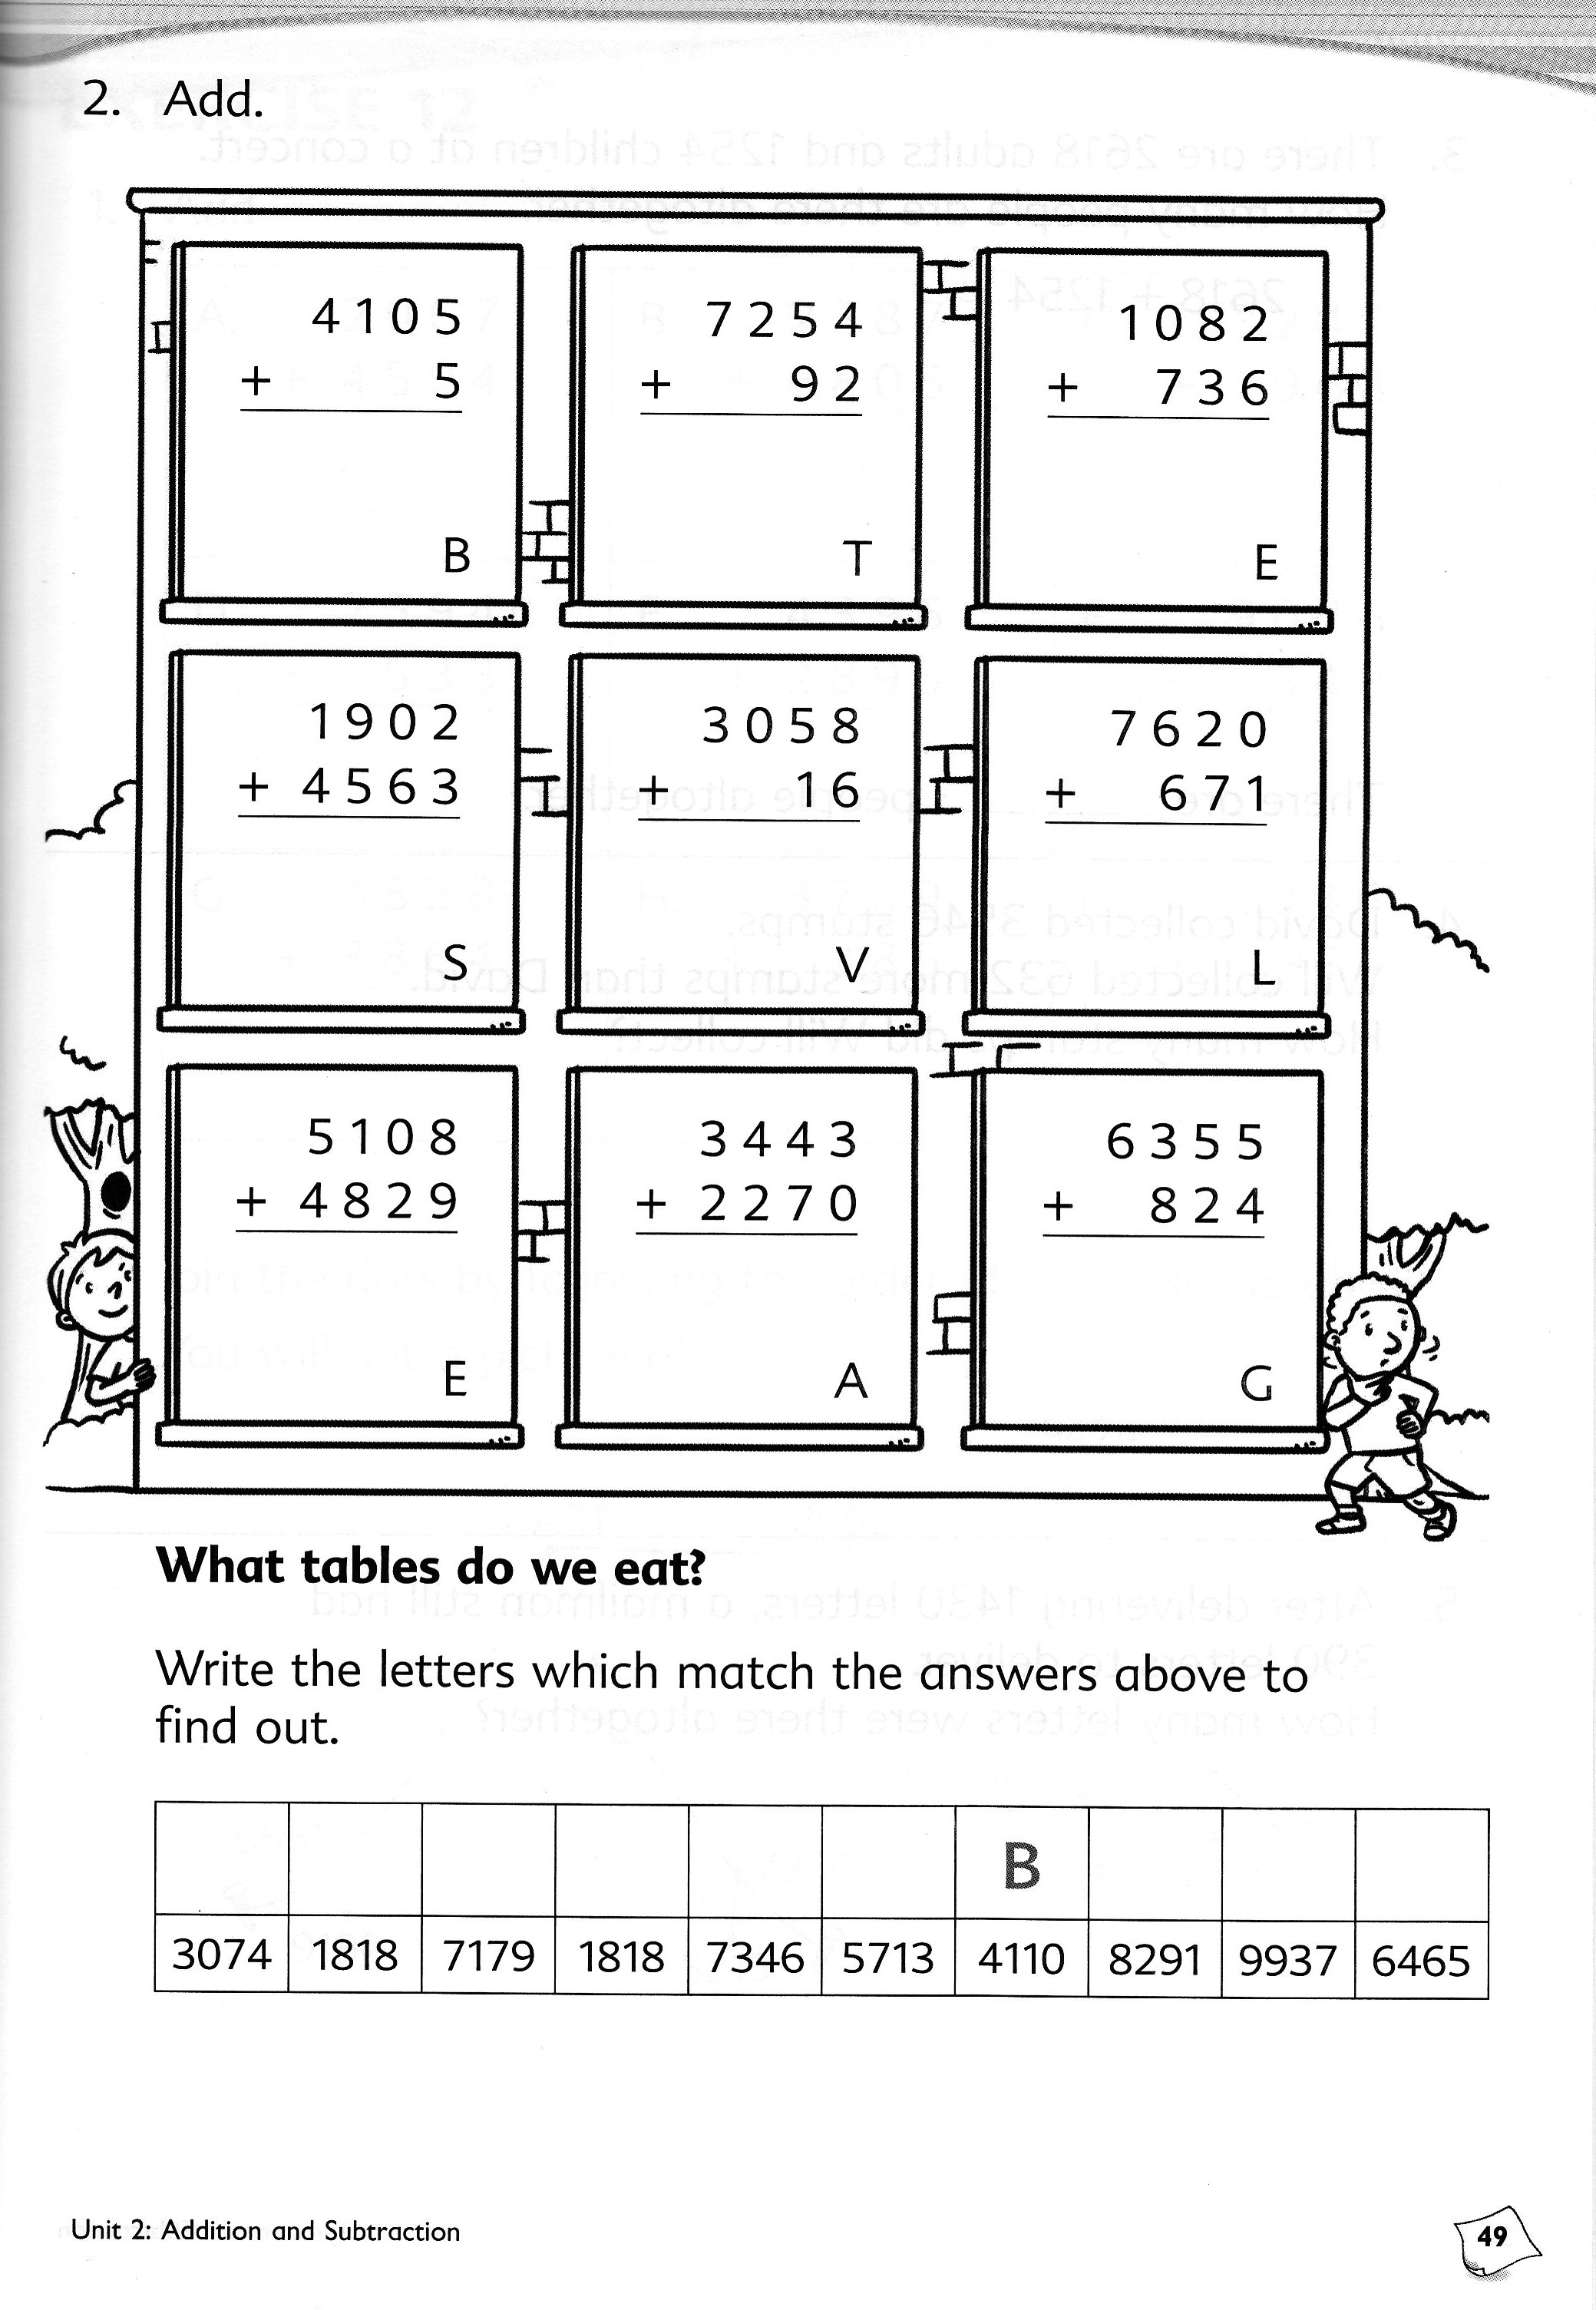 Comparing Singapore Math Materials Workbooks